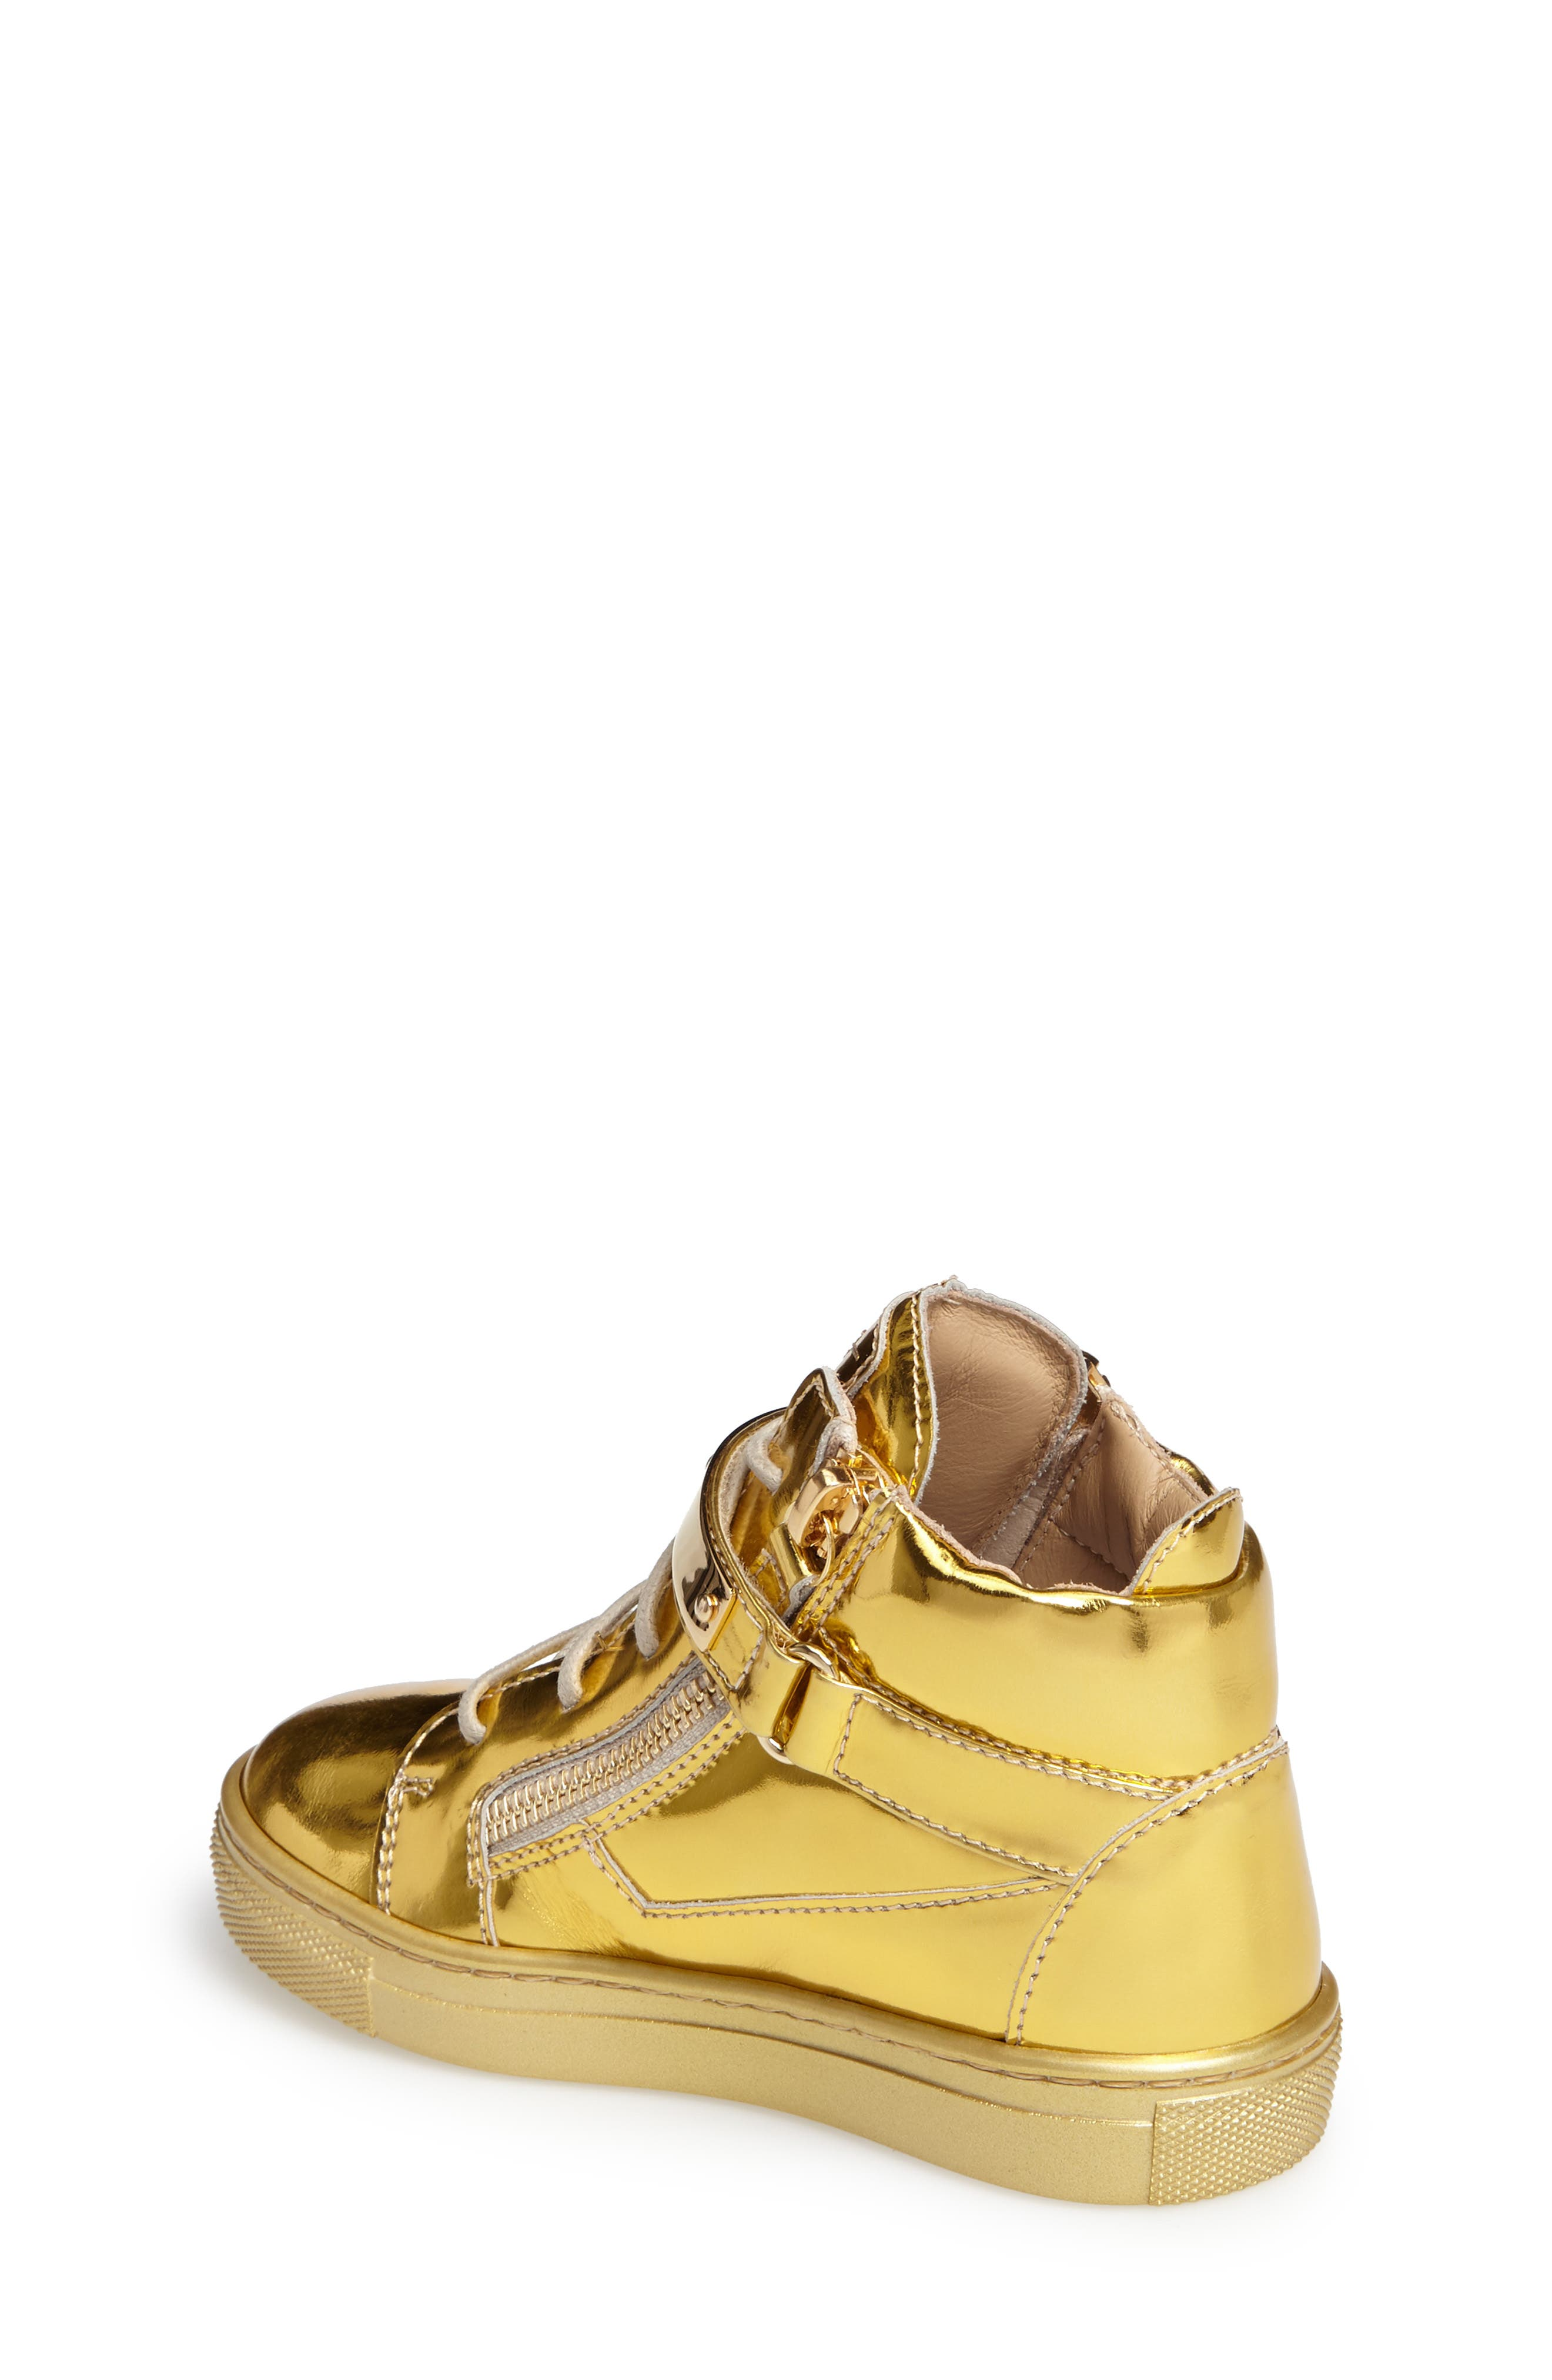 High Top Sneaker,                             Alternate thumbnail 2, color,                             GOLD